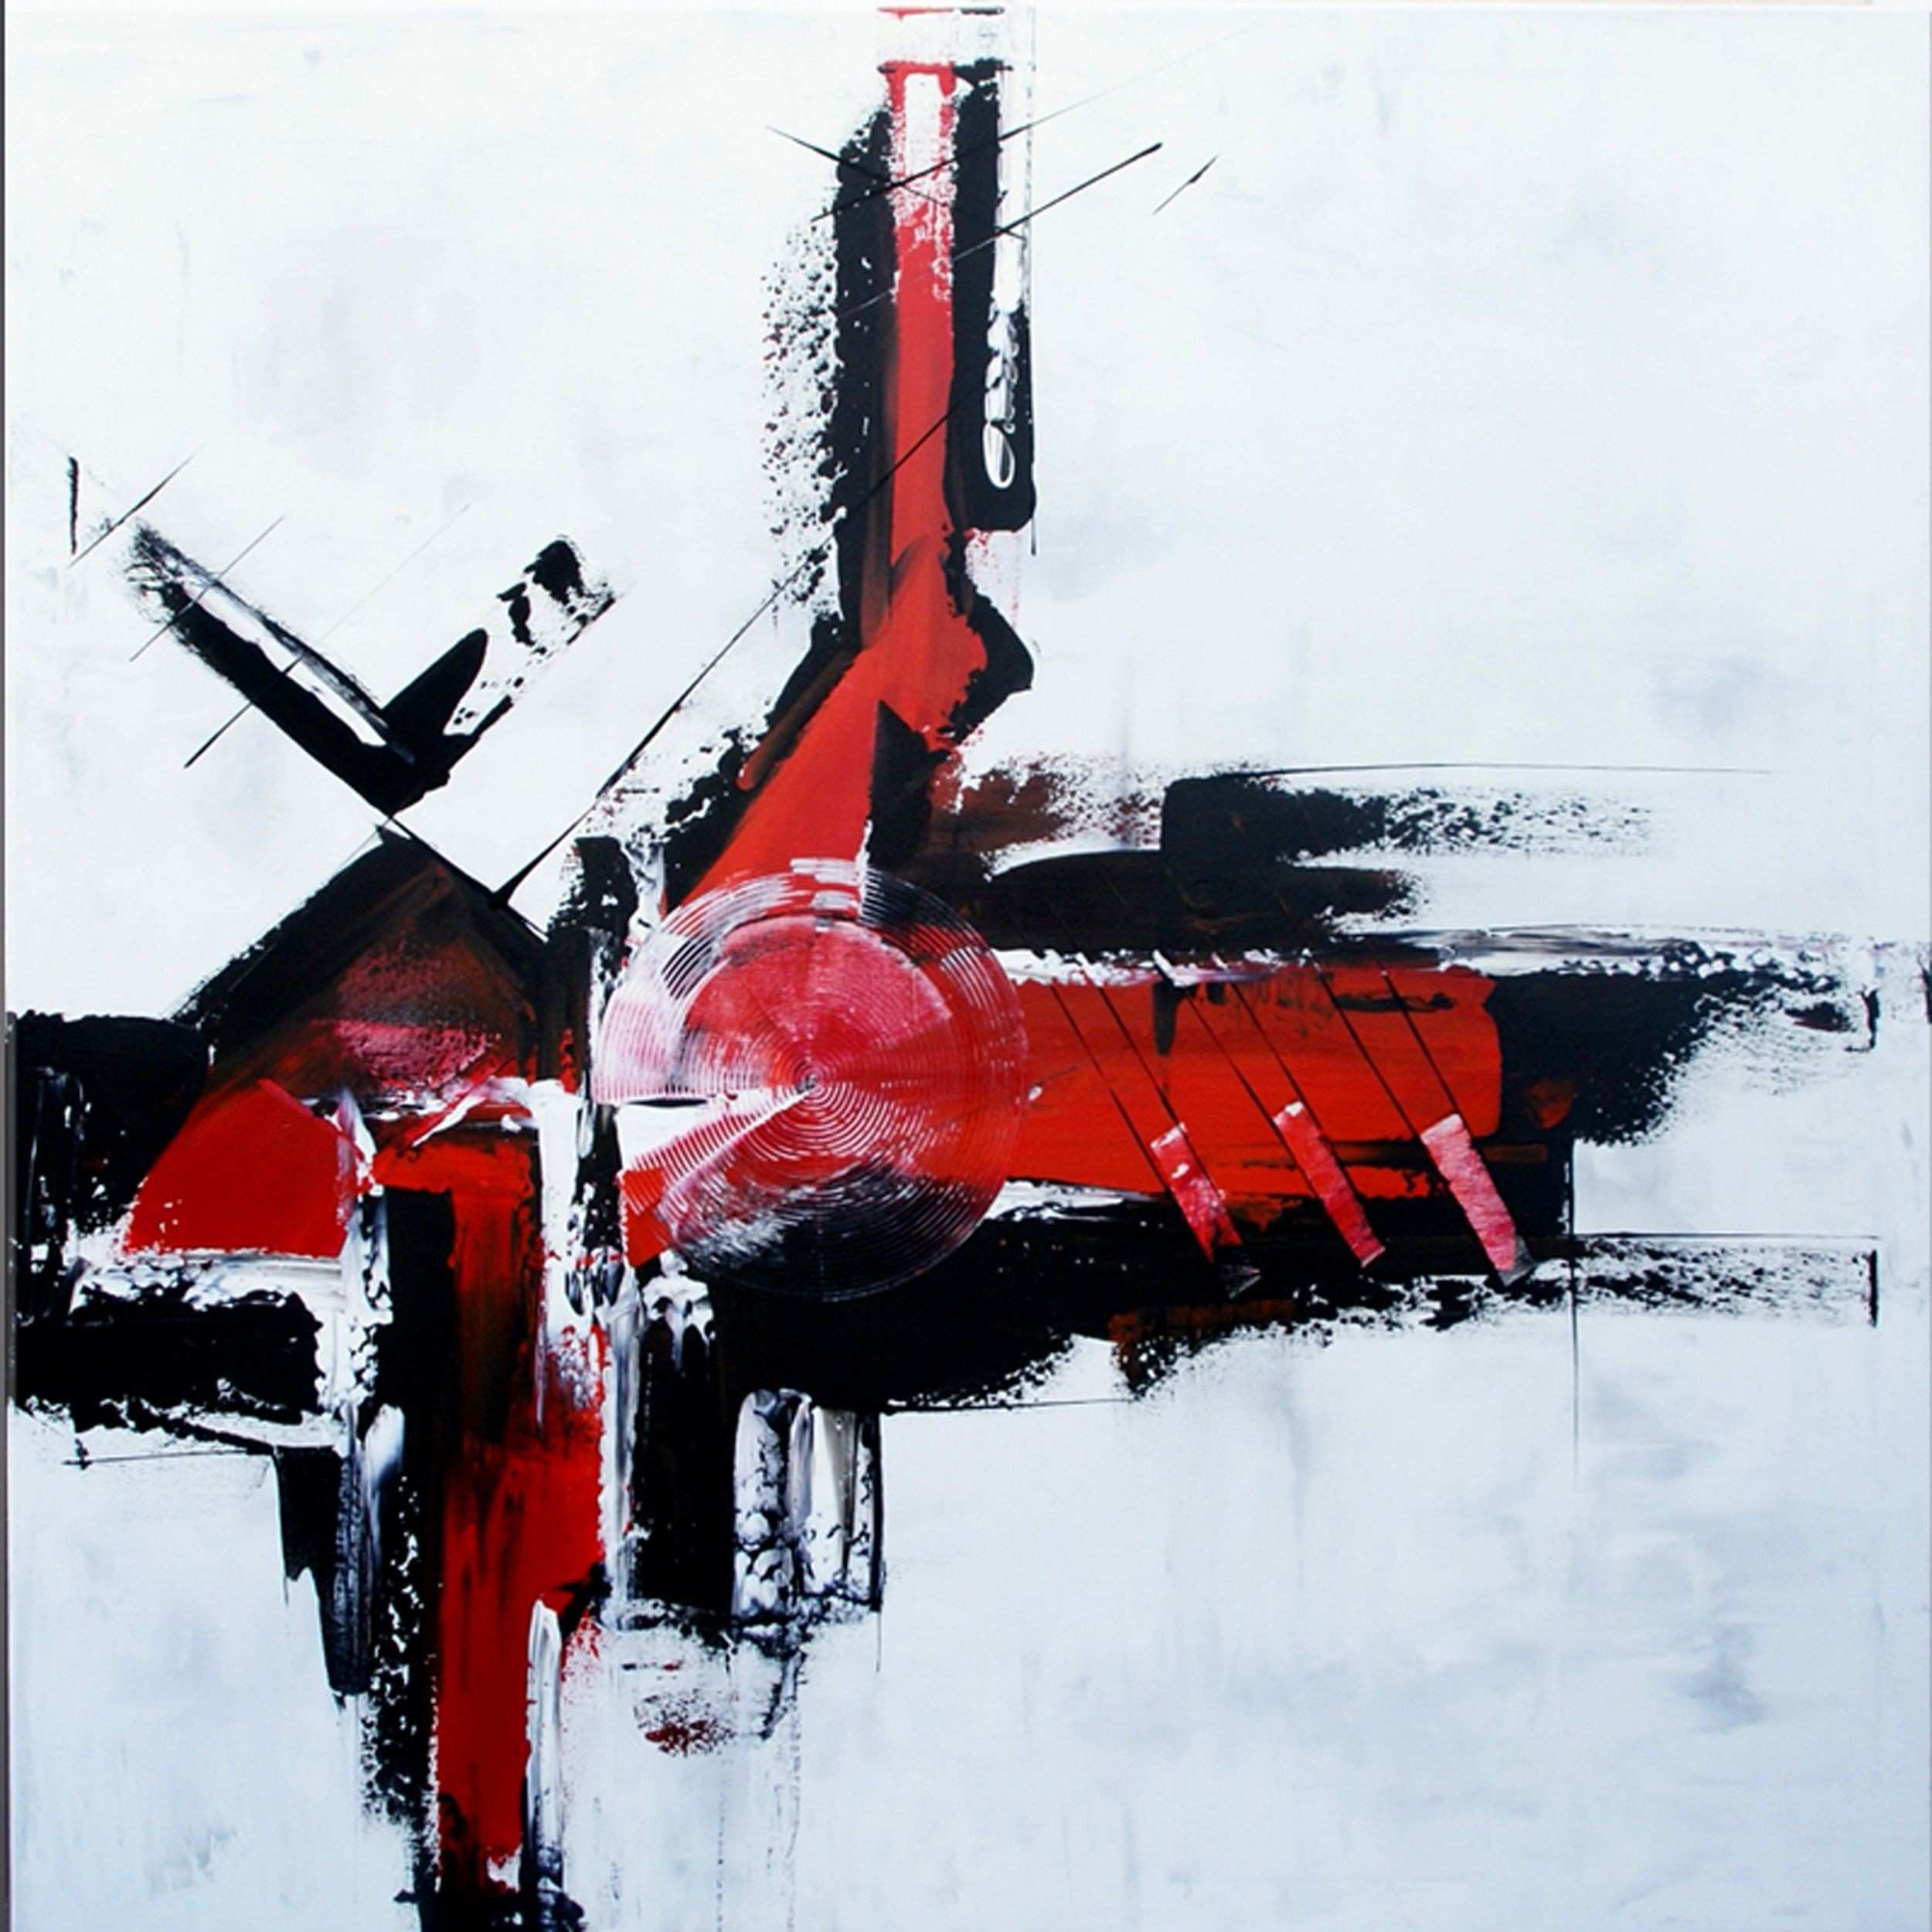 For Sale position with Black White and Red by ModernArtbyAda